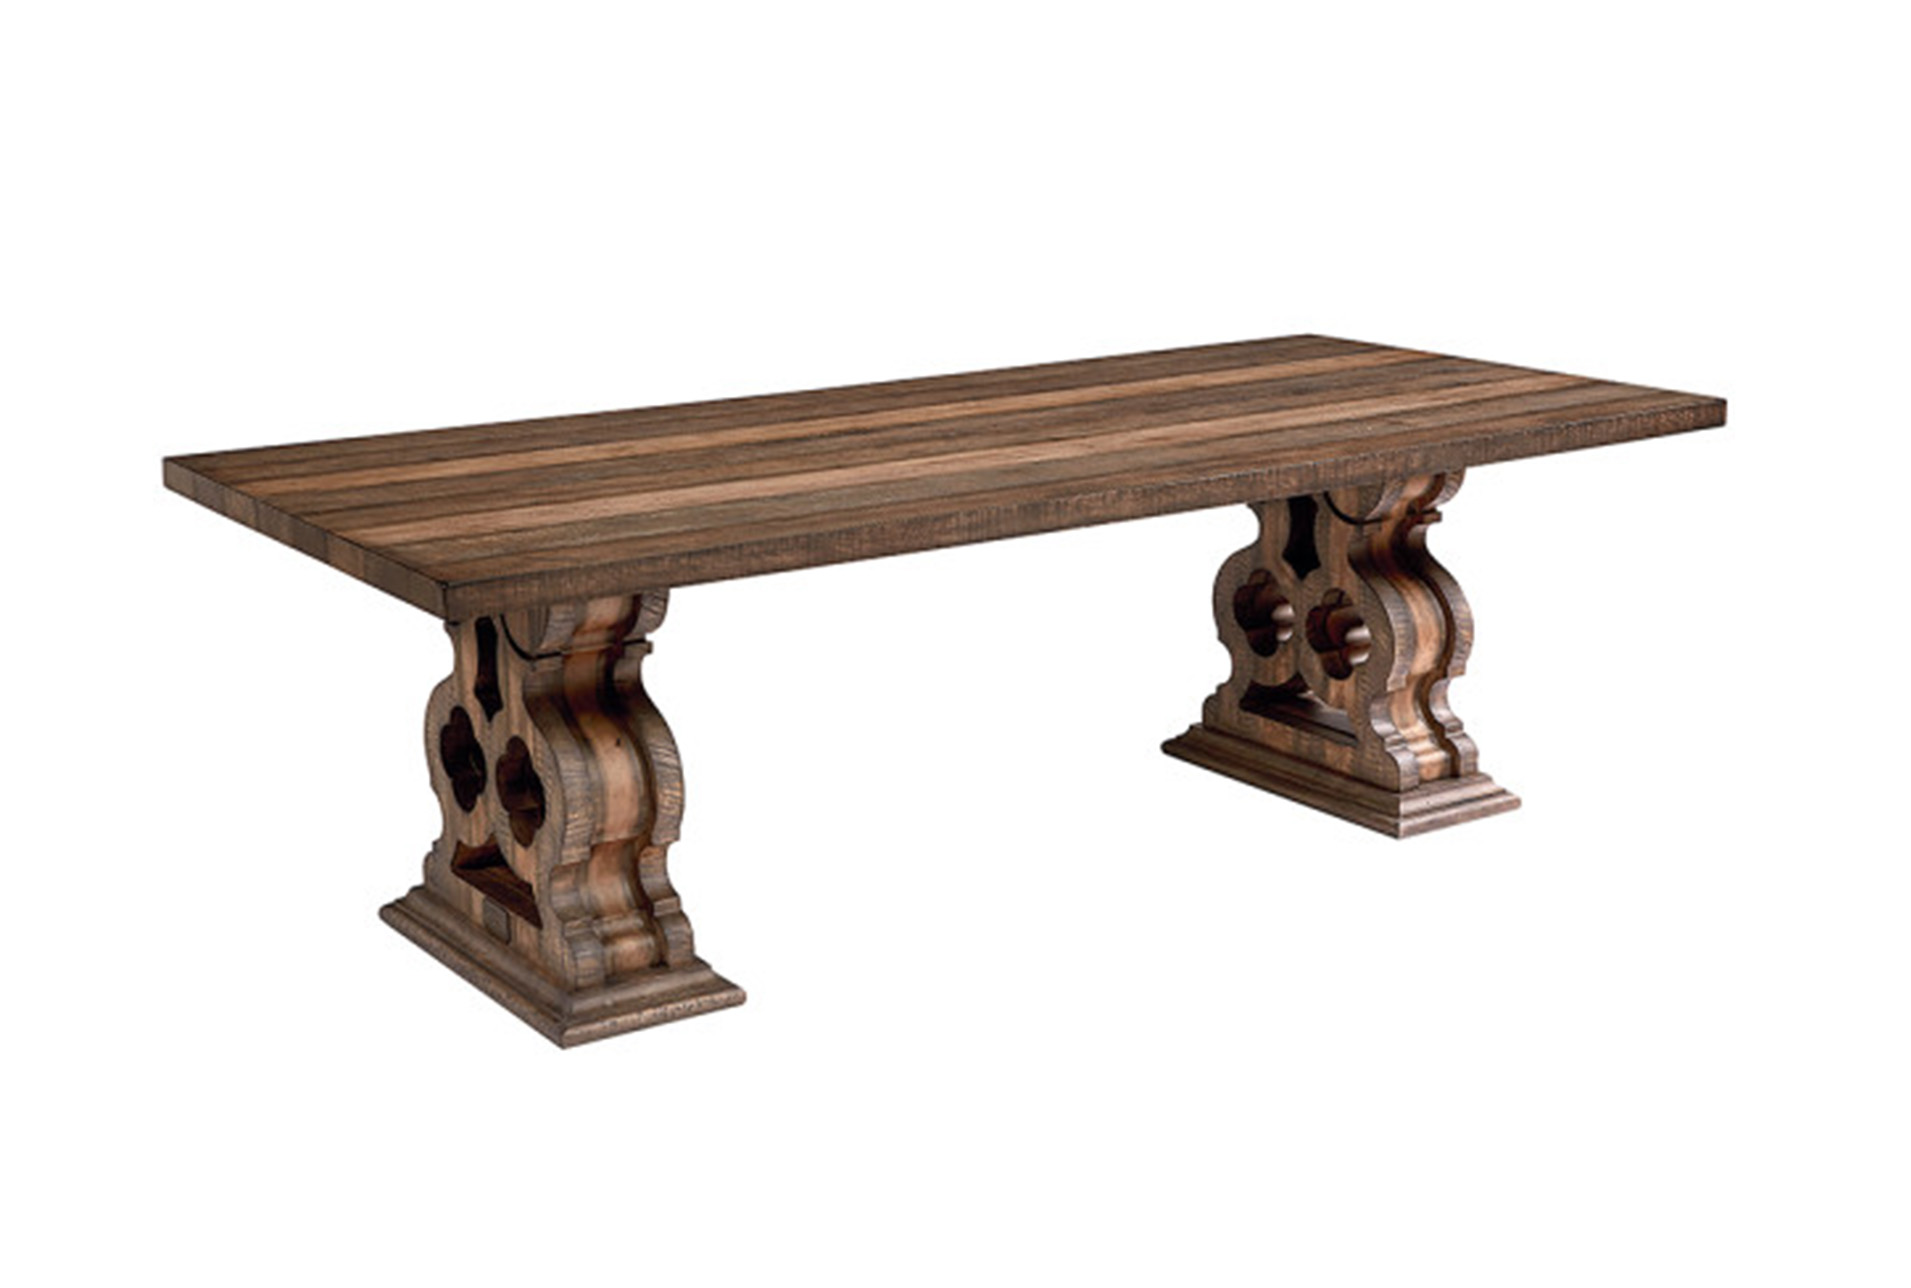 pedestal kitchen table high end faucet magnolia home double dining by joanna gaines living 360